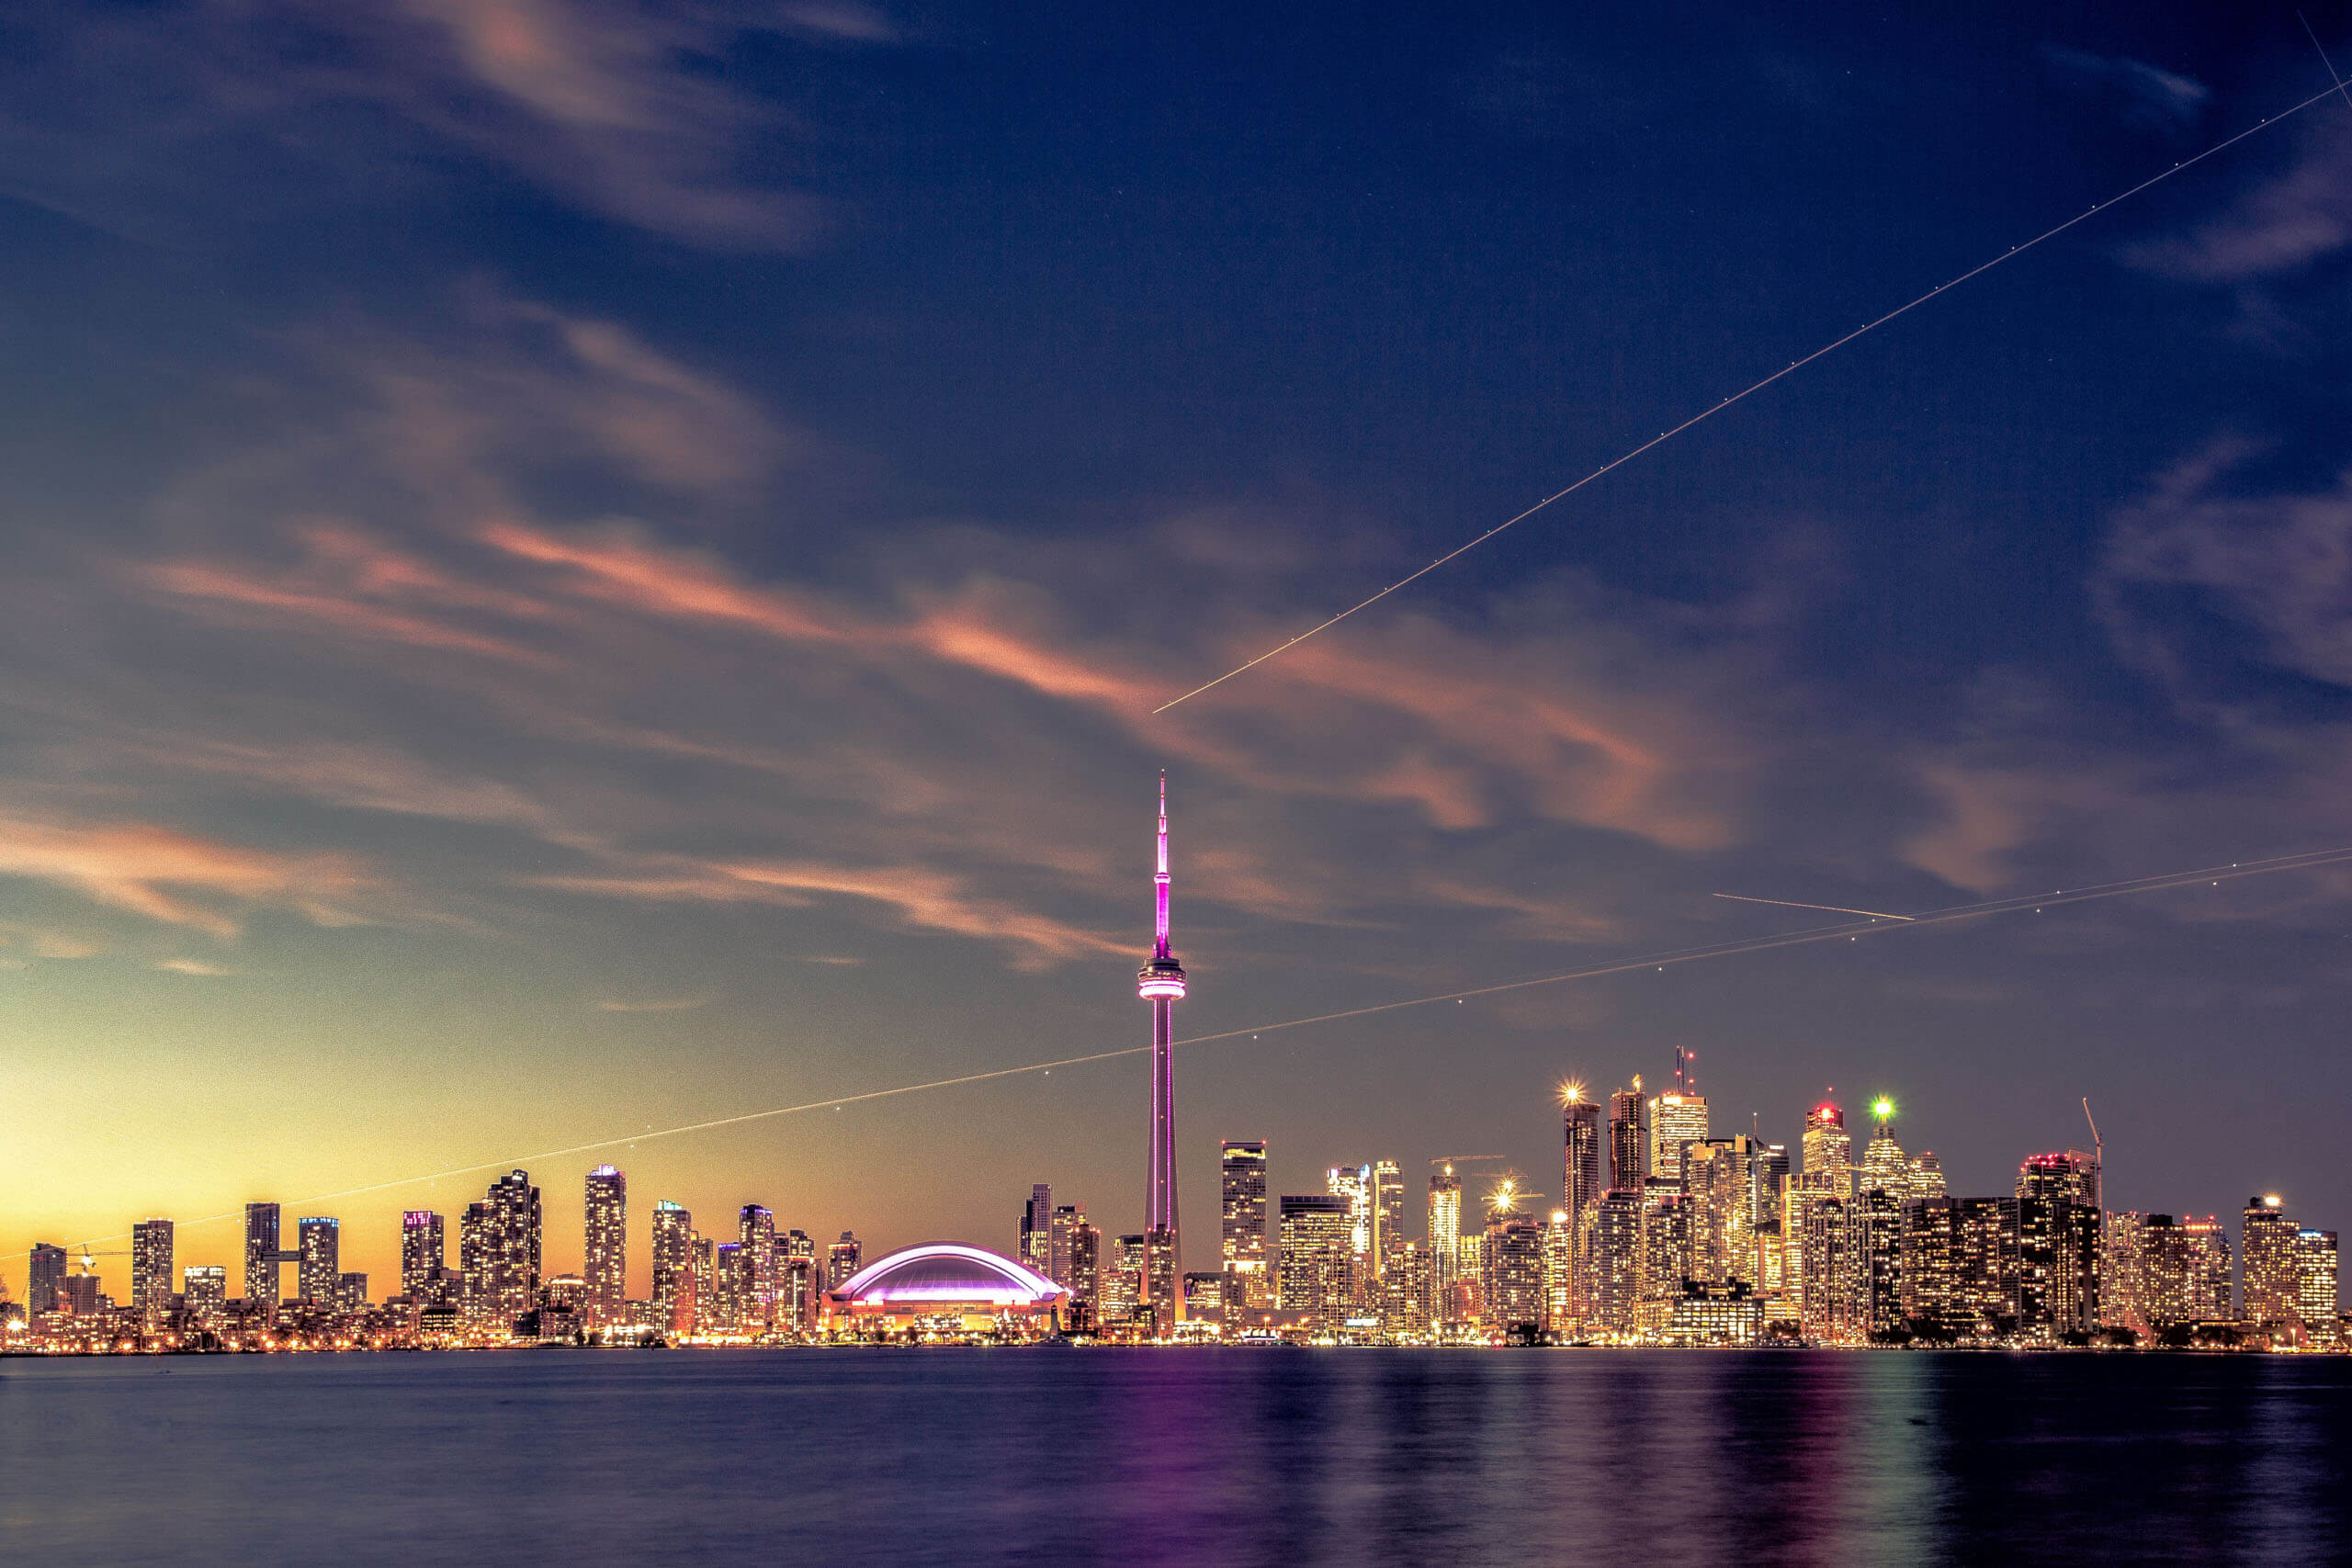 Toronto skyline. Photo by MURUCUTU on Unsplash